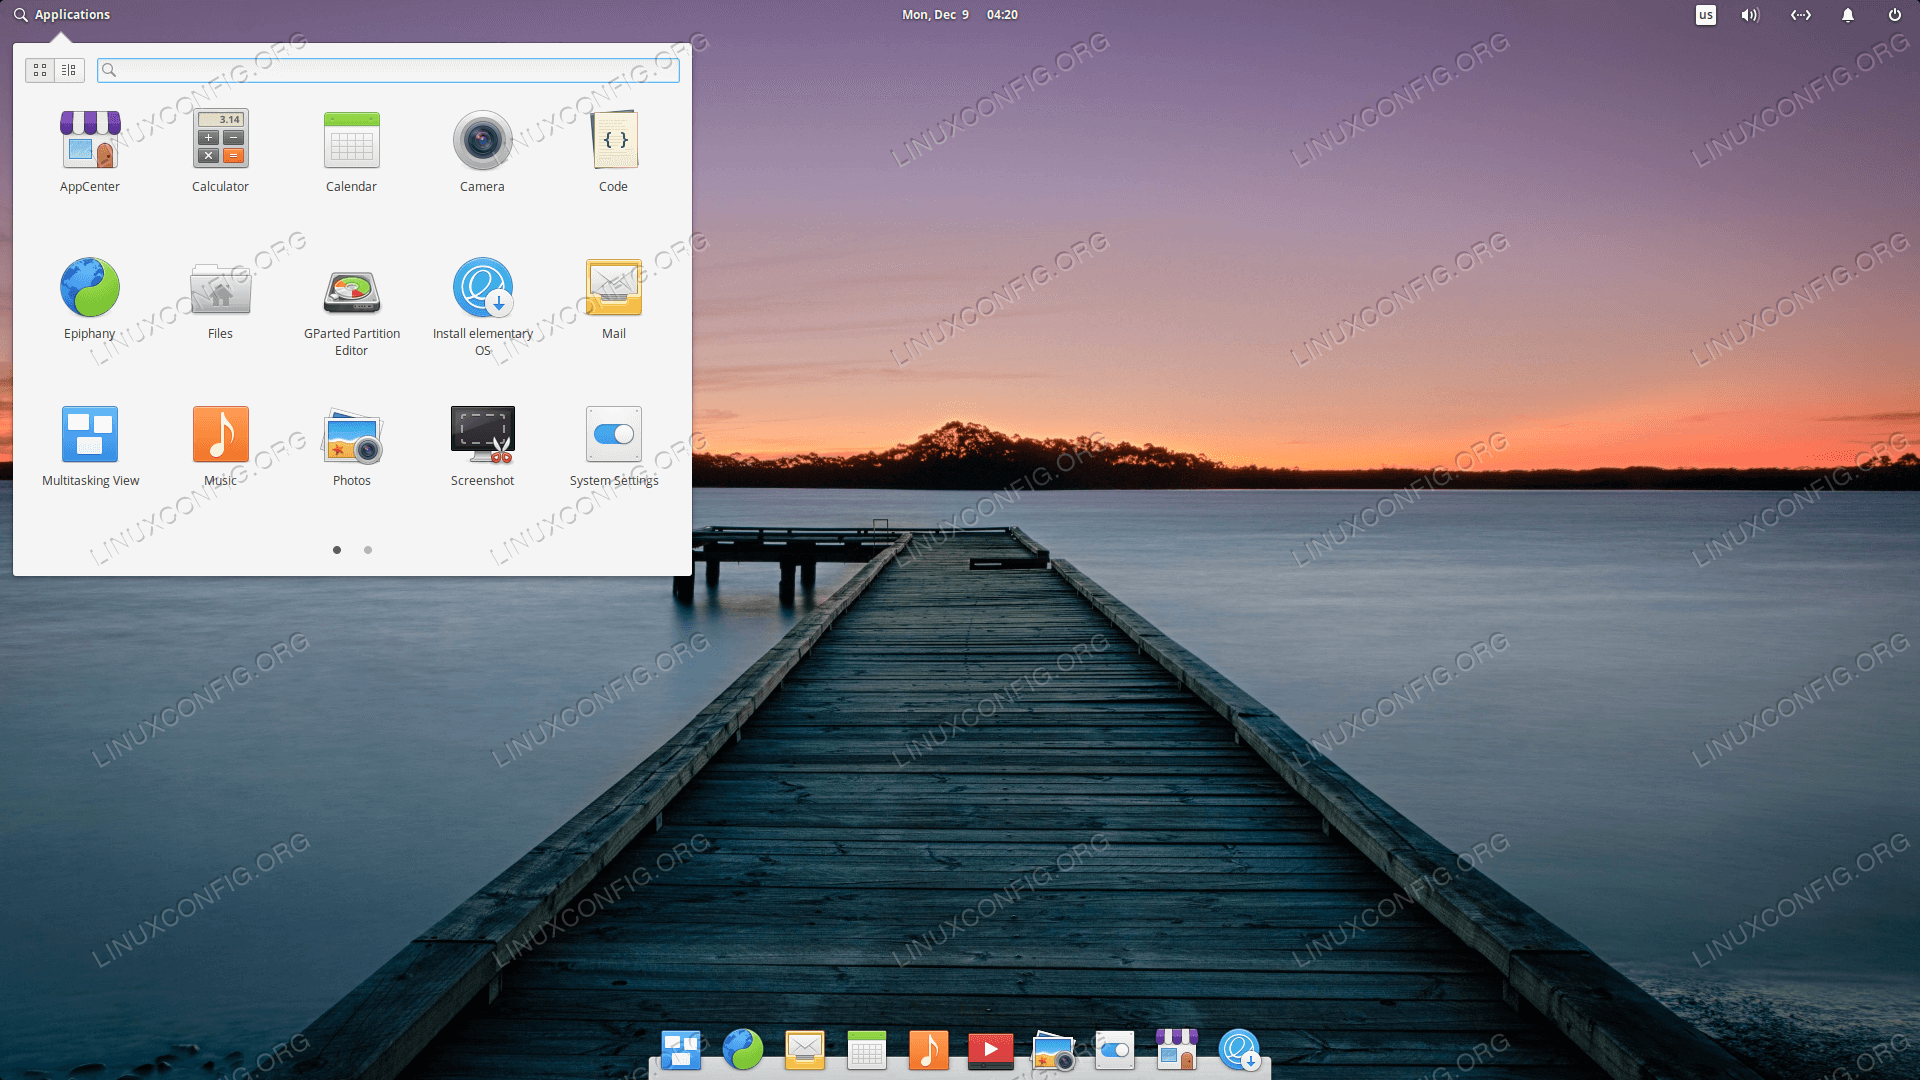 Elementary OS desktop screenshot